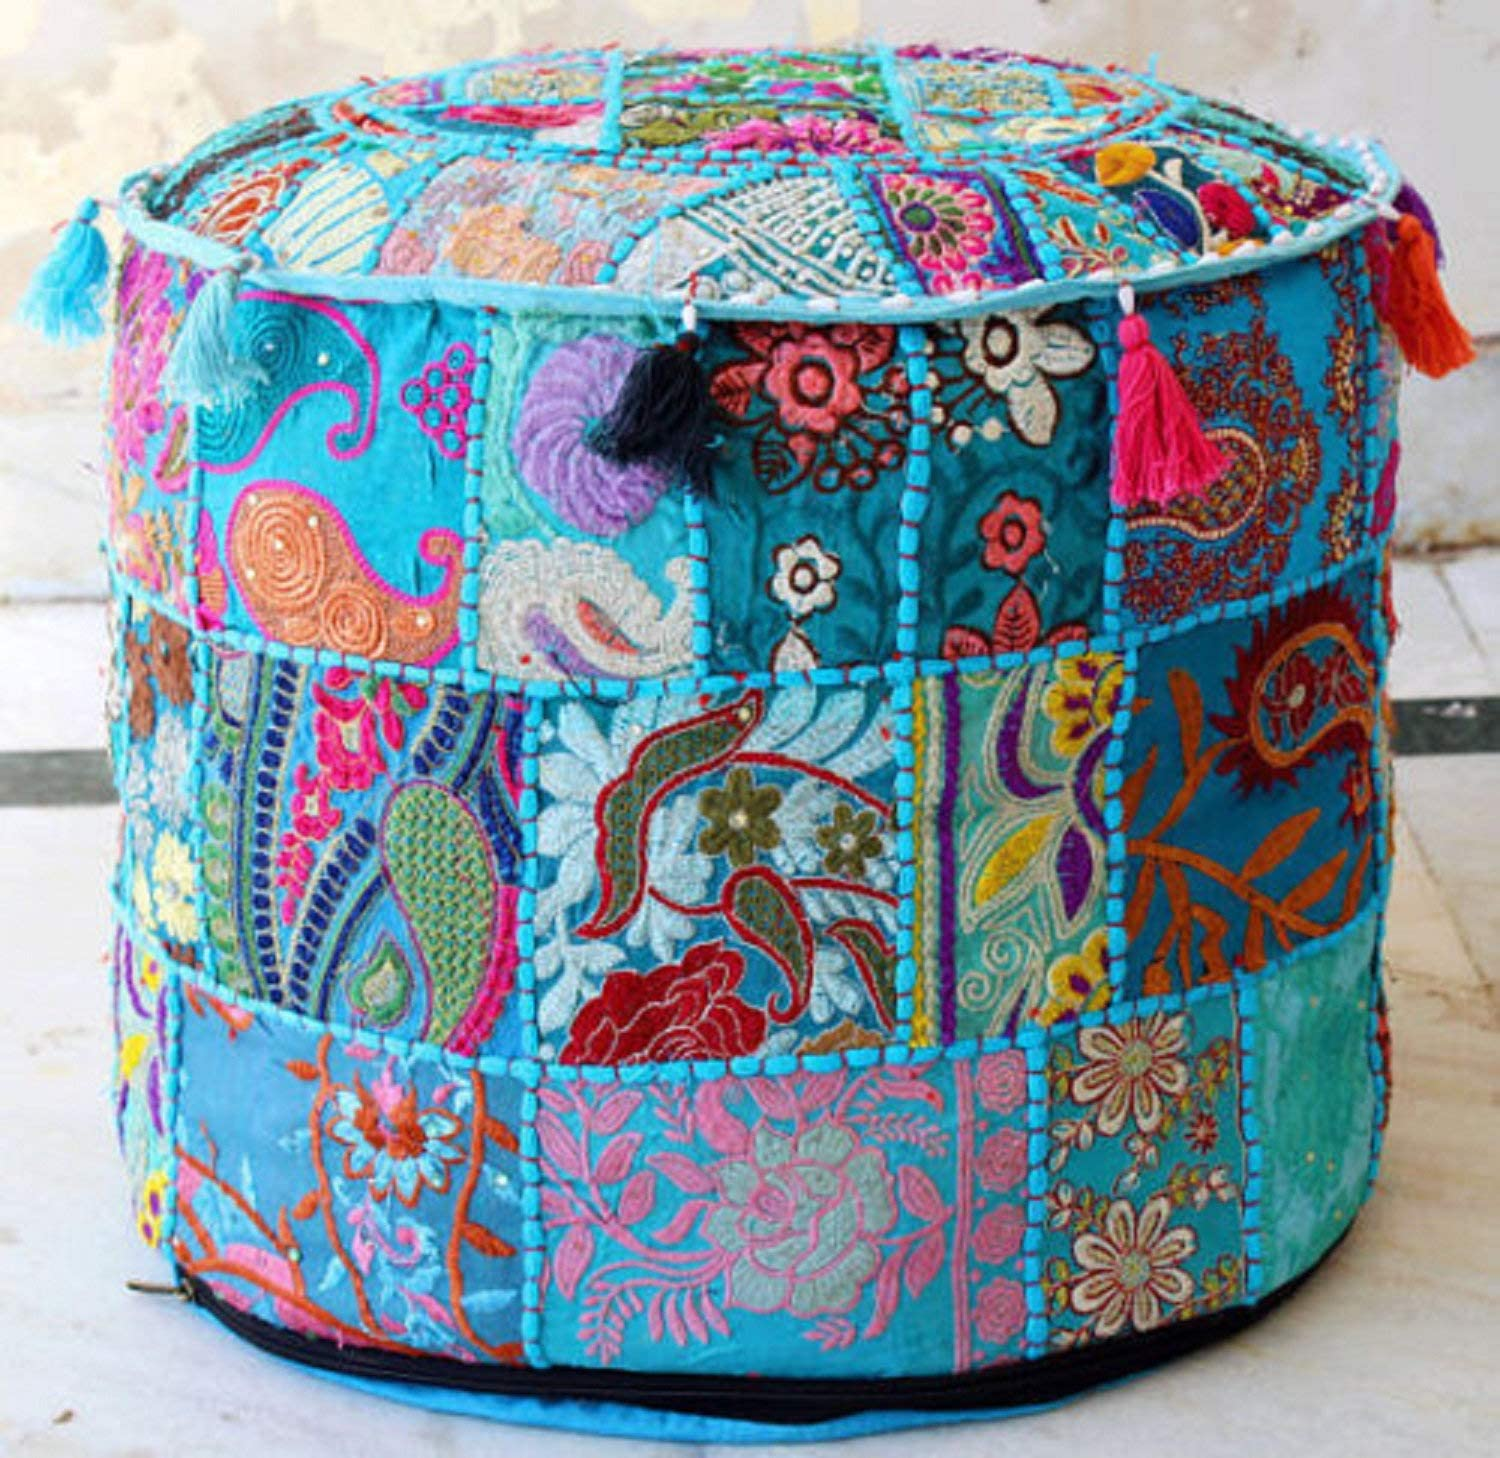 Jaipurstudio W22xH14 Indian Handmade Patchwork Pouf Cover Terquise